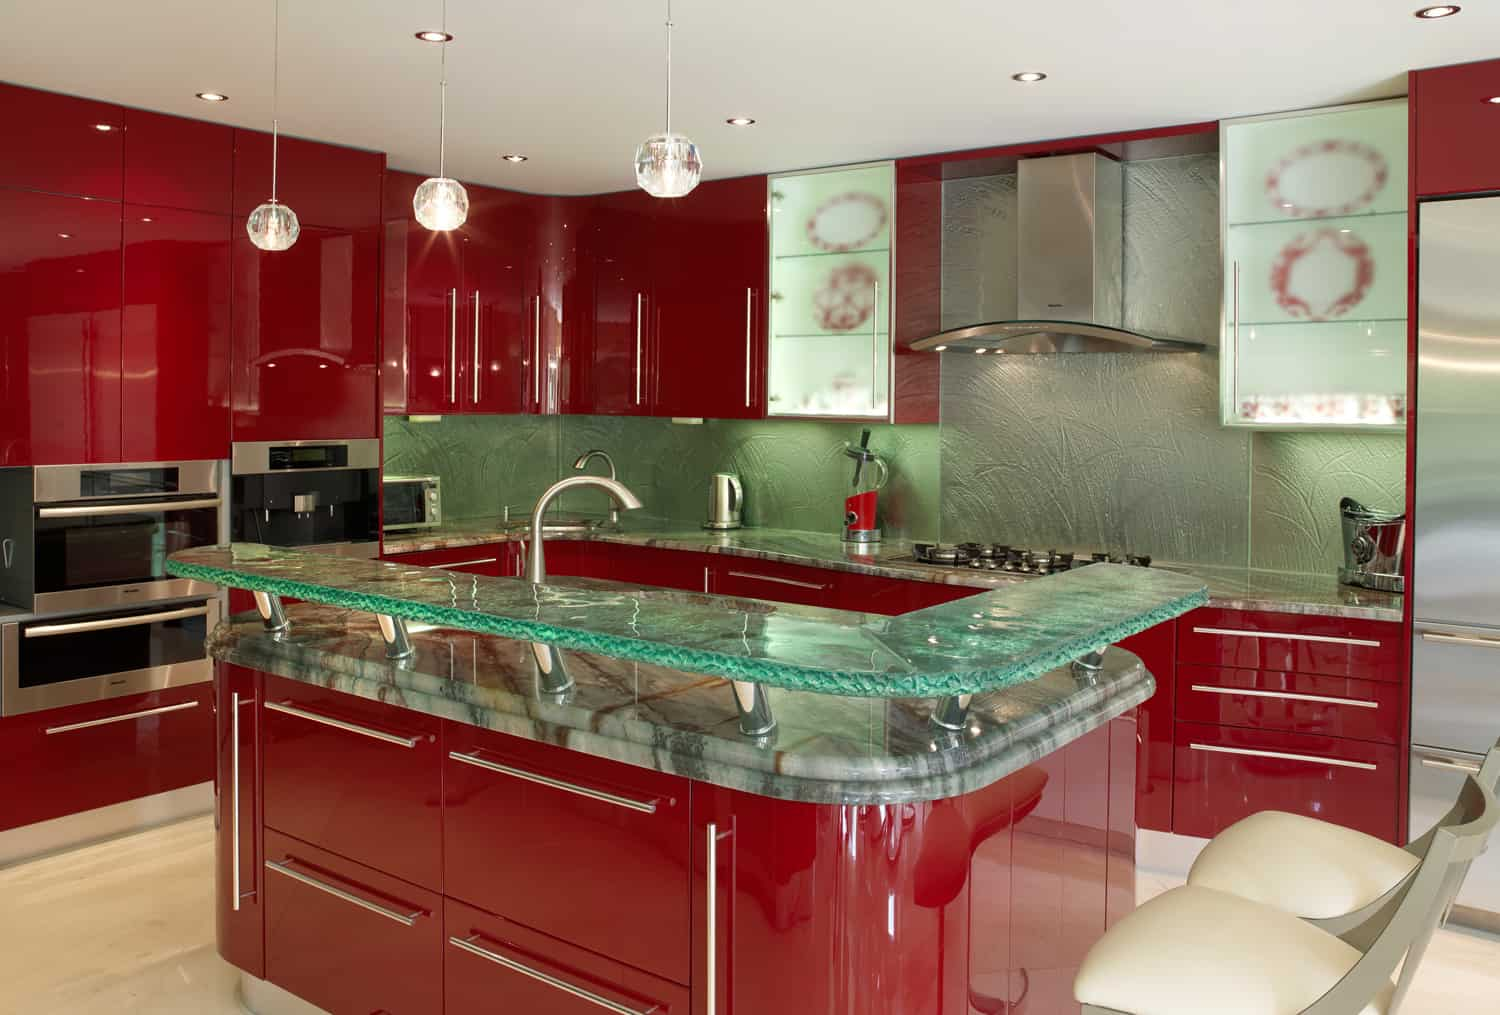 Kitchen Countertop Pattern : Modern kitchen countertops from unusual materials ideas